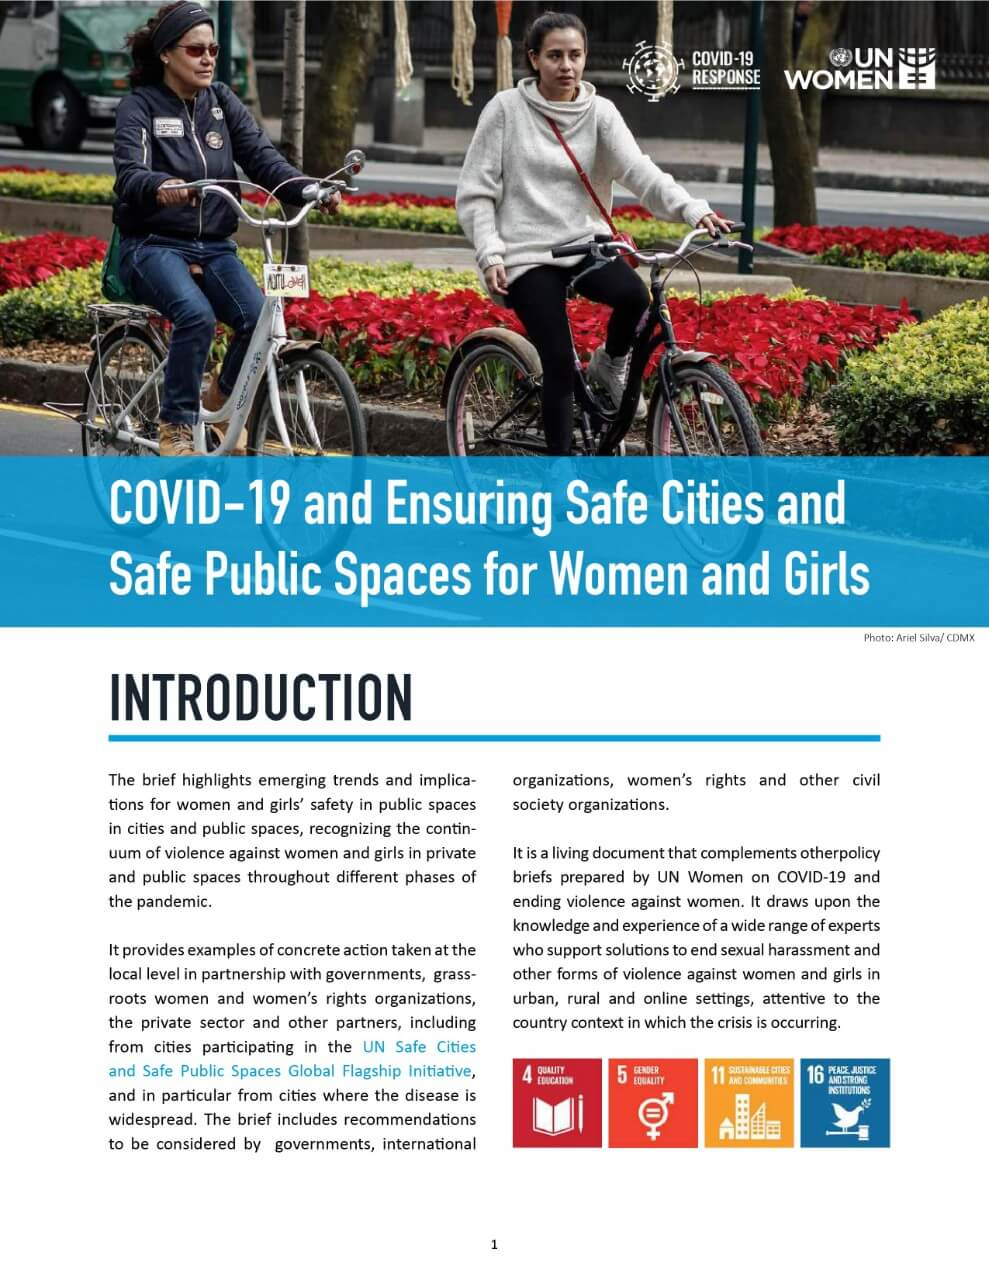 COVID-19 and ensuring safe cities and safe public spaces for women and girls